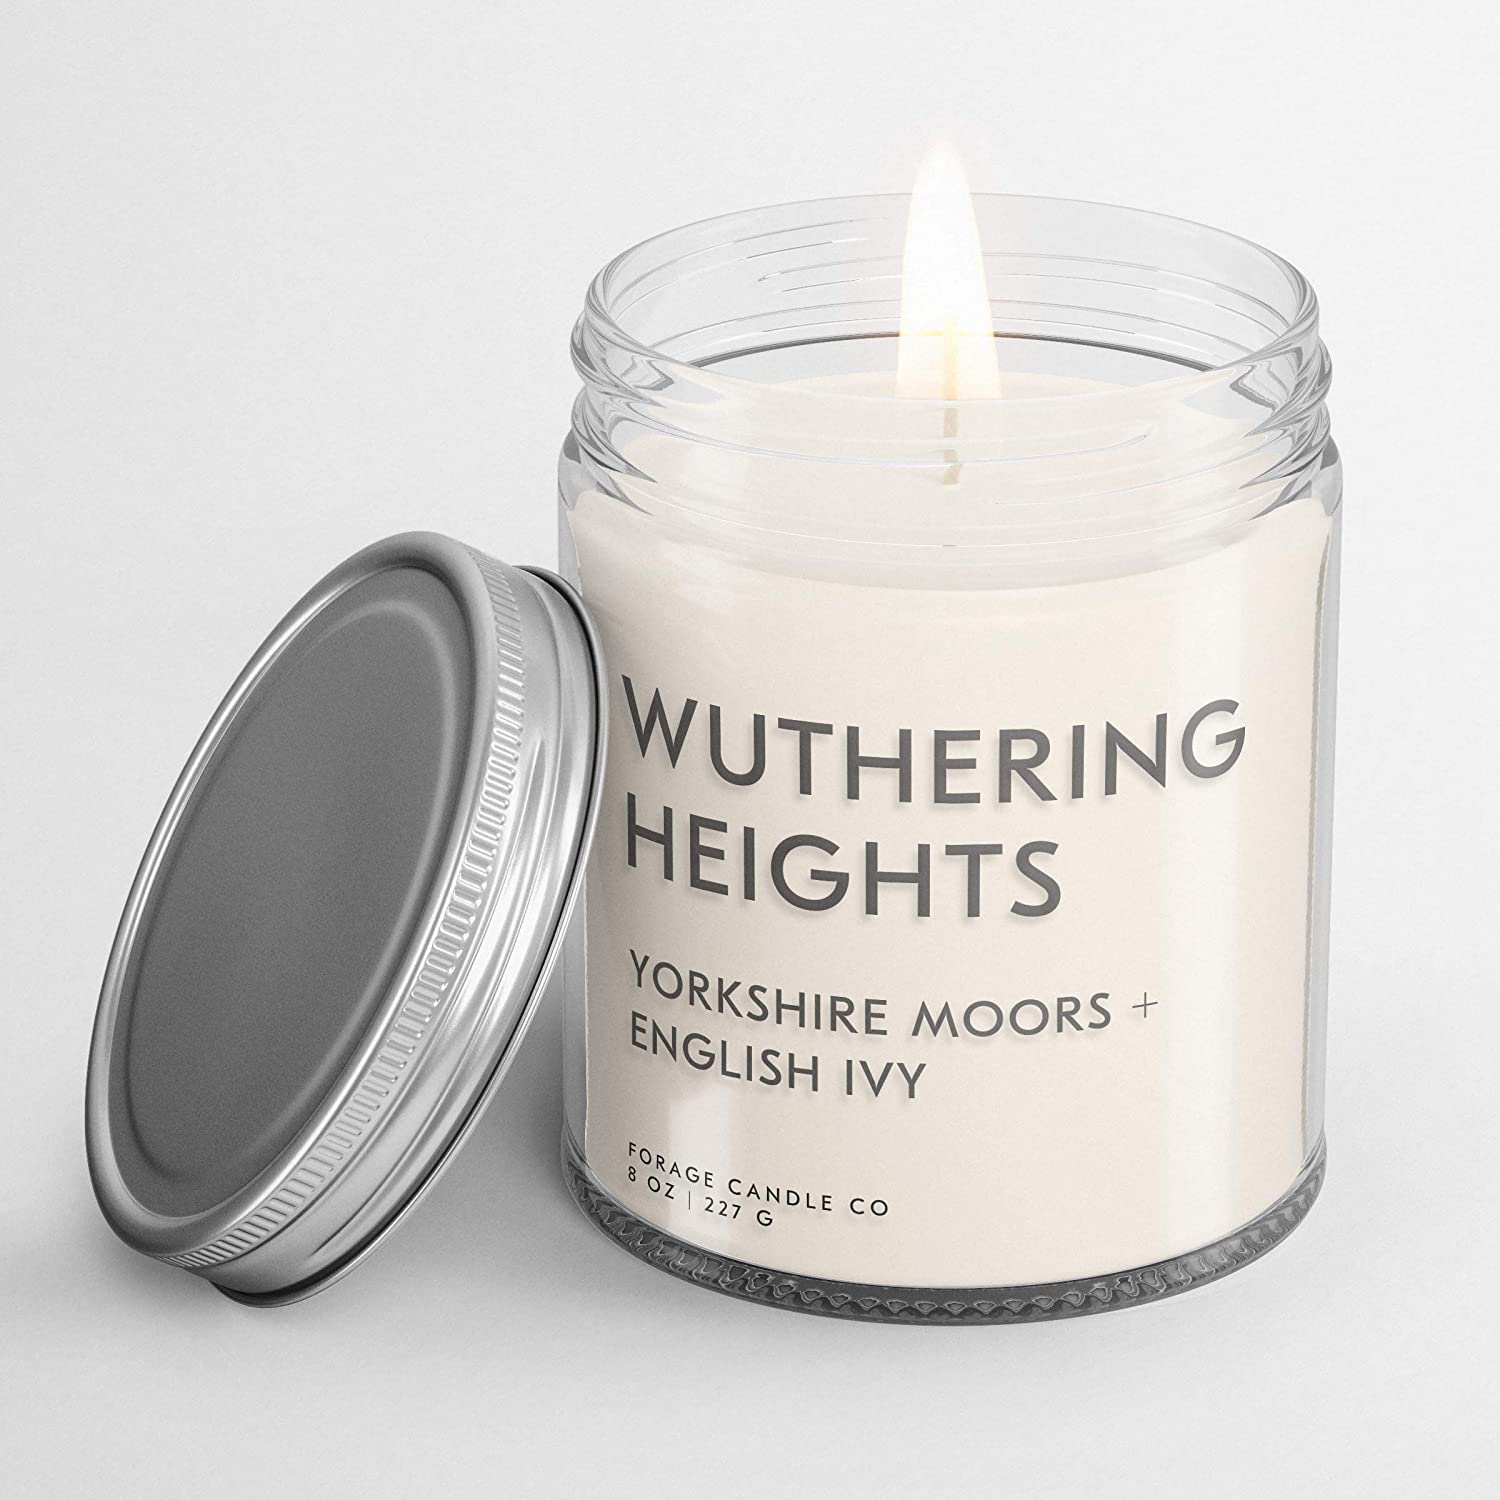 WUTHERING HEIGHTS Book Lovers' Candle | Book Scented Candle | Vegan + Cruelty-Free + Phthalte-Free